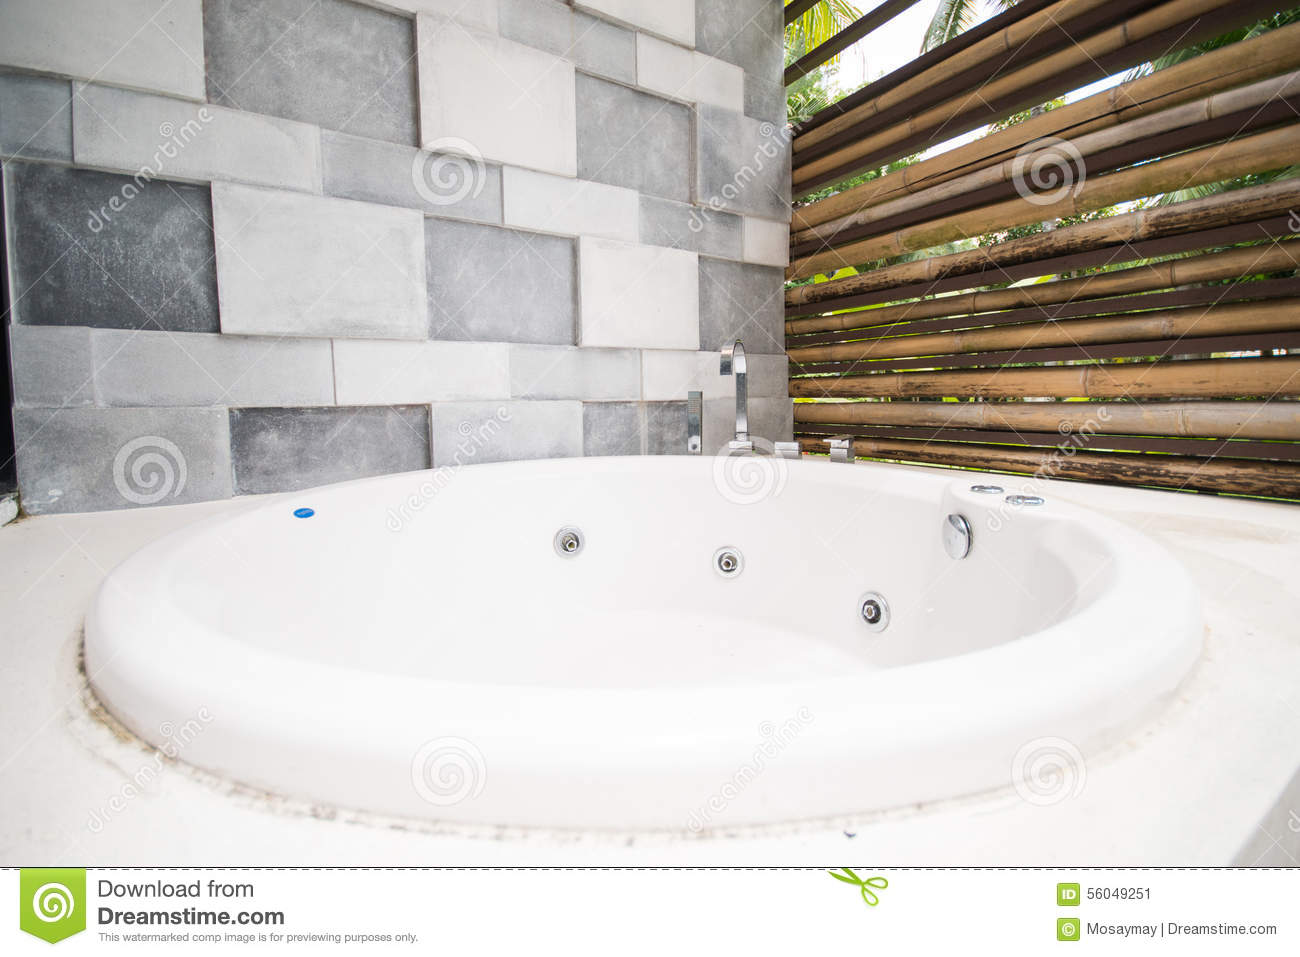 Jacuzzi Tub Outside The Room In Hotel Stock Image - Image of health ...